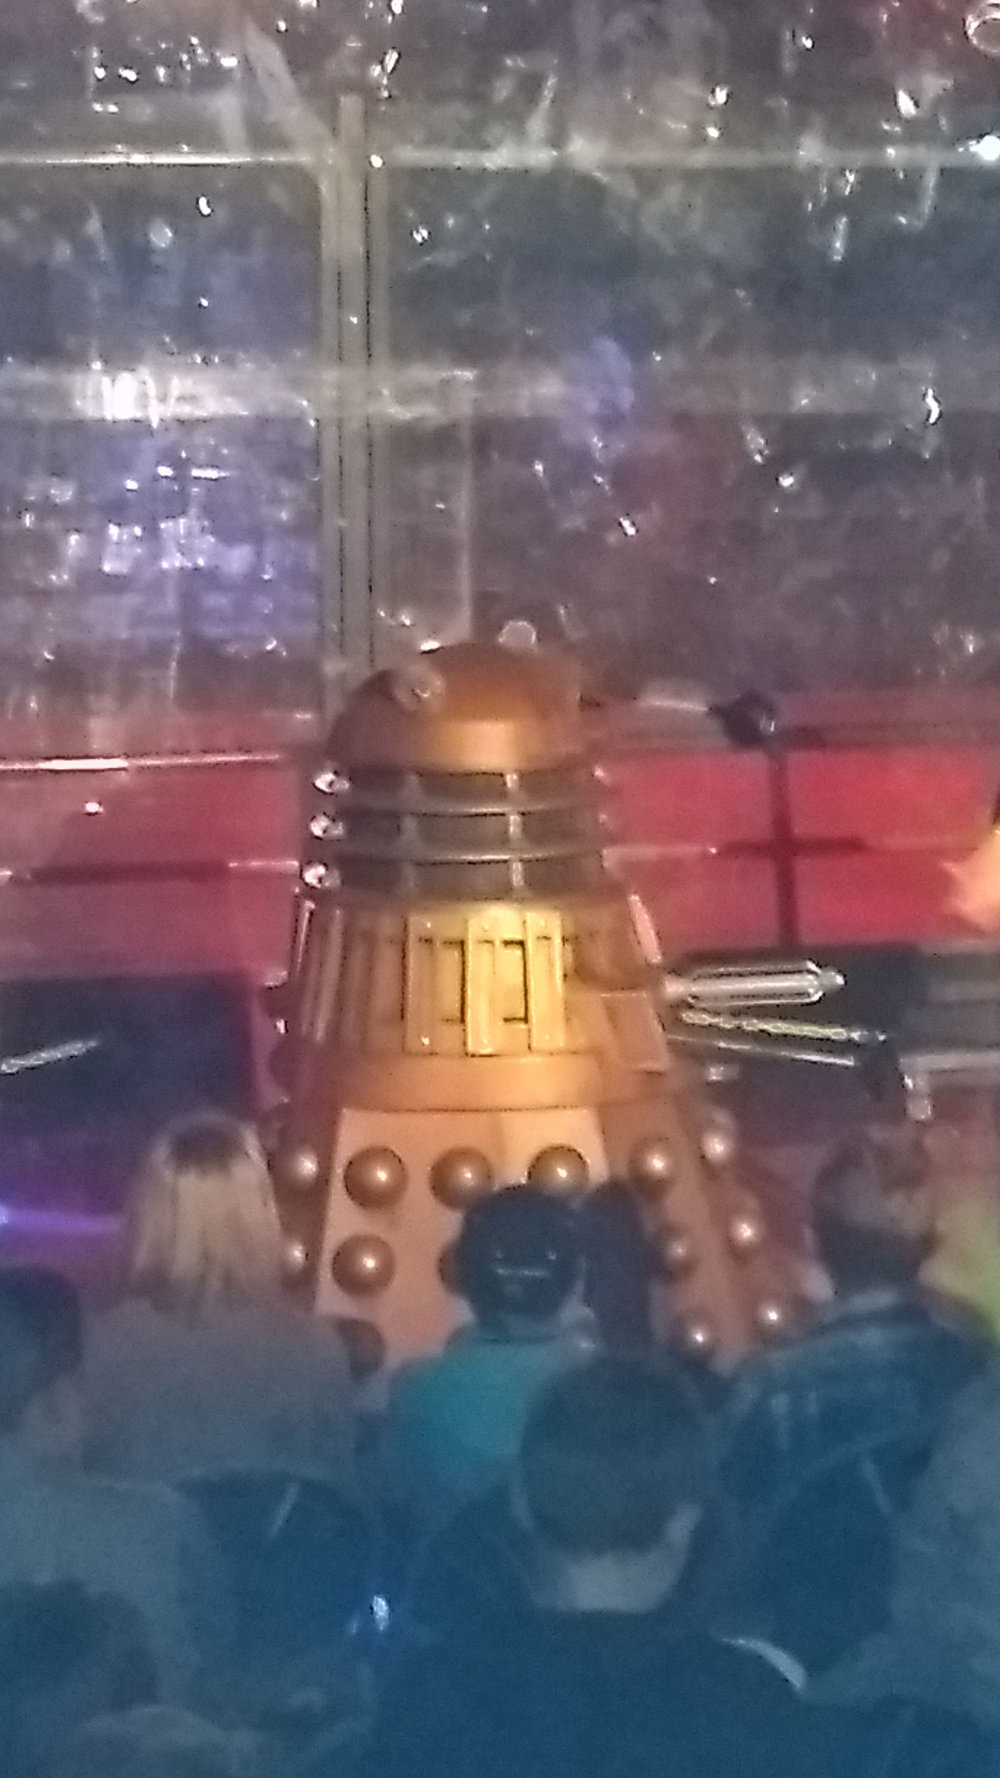 Doctor Who Dalek!